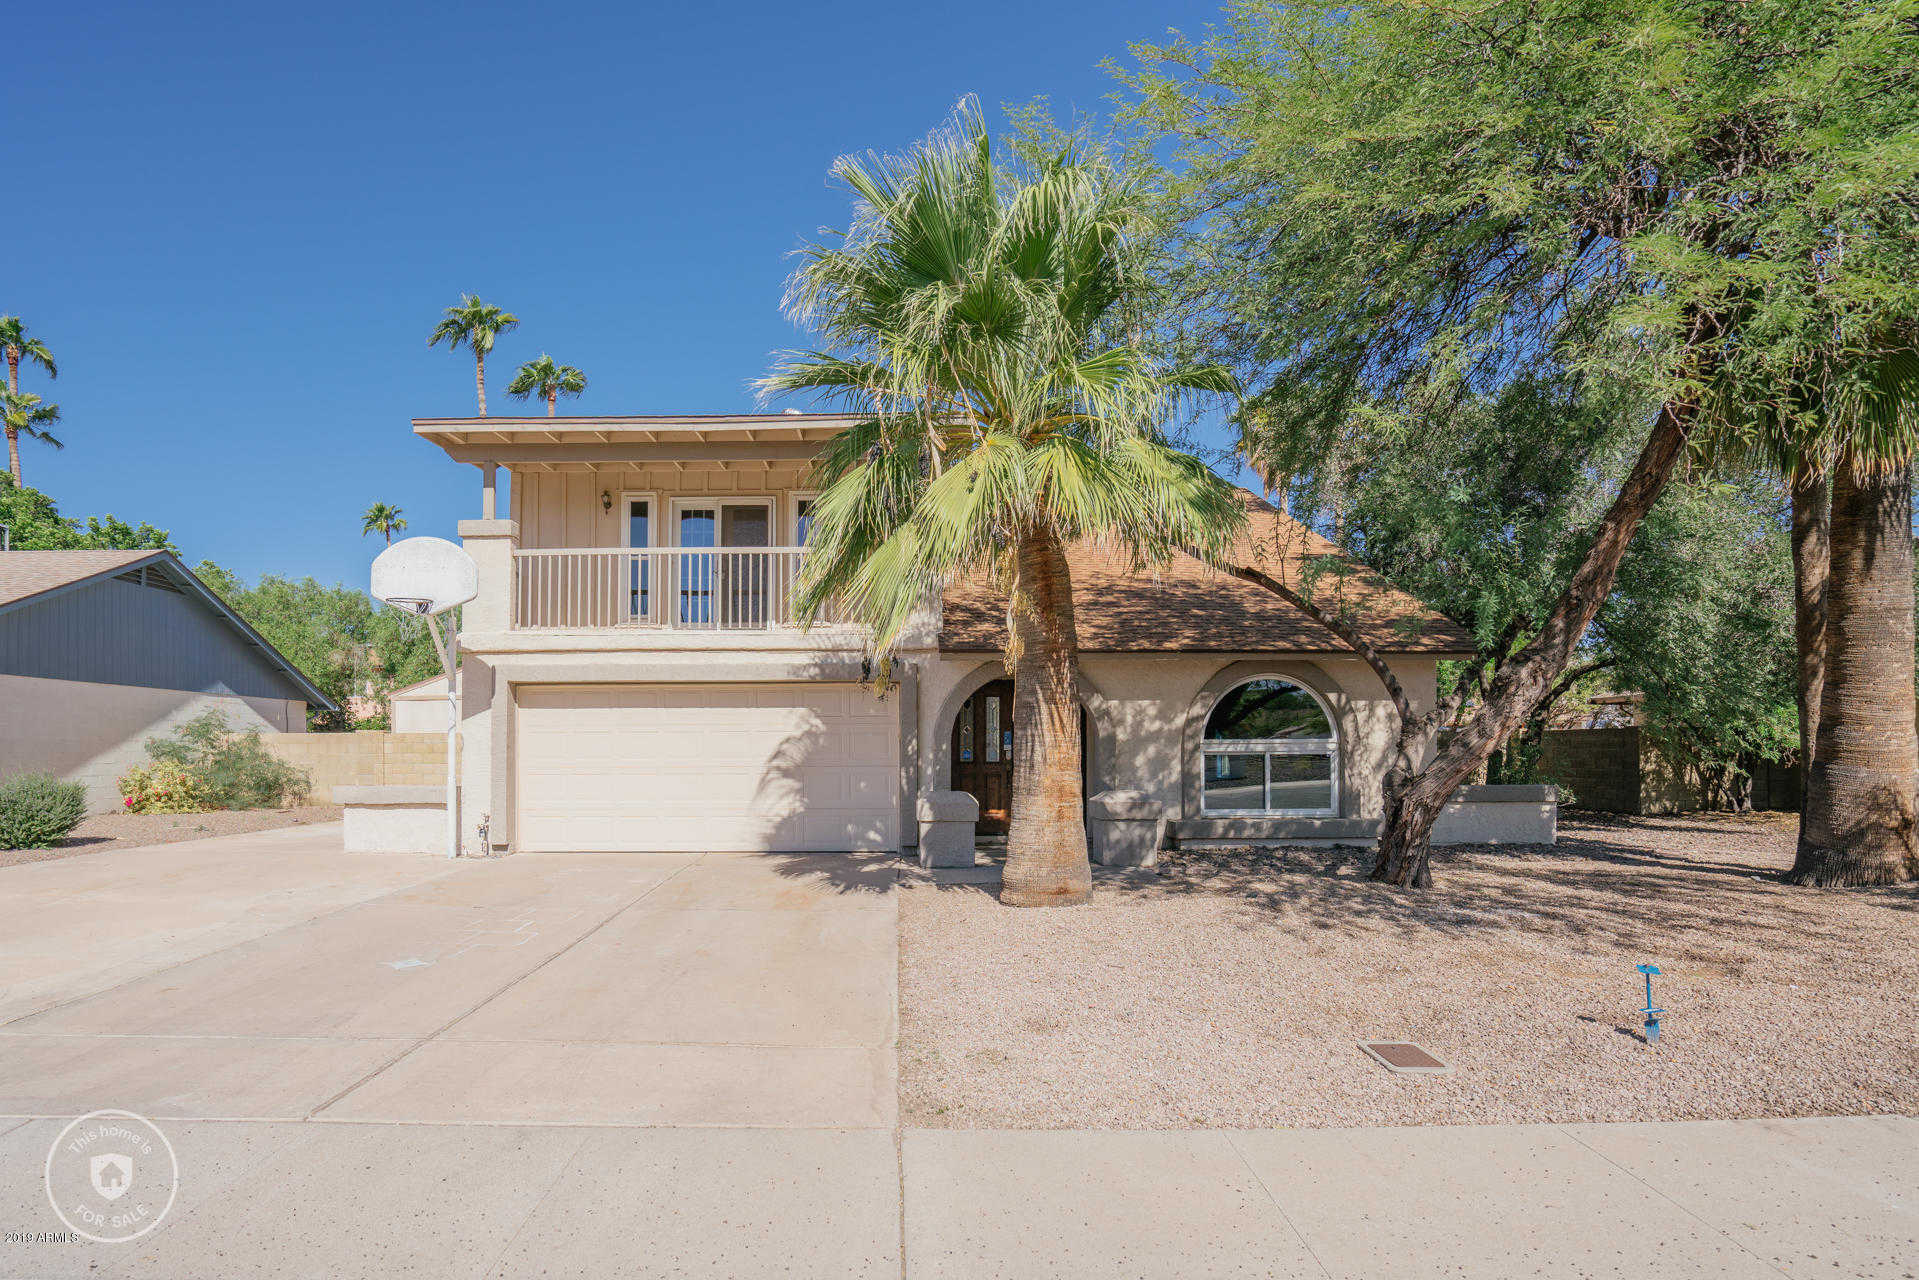 $300,000 - 4Br/3Ba - Home for Sale in Copperwood Unit 2 Lot 83-198, Glendale